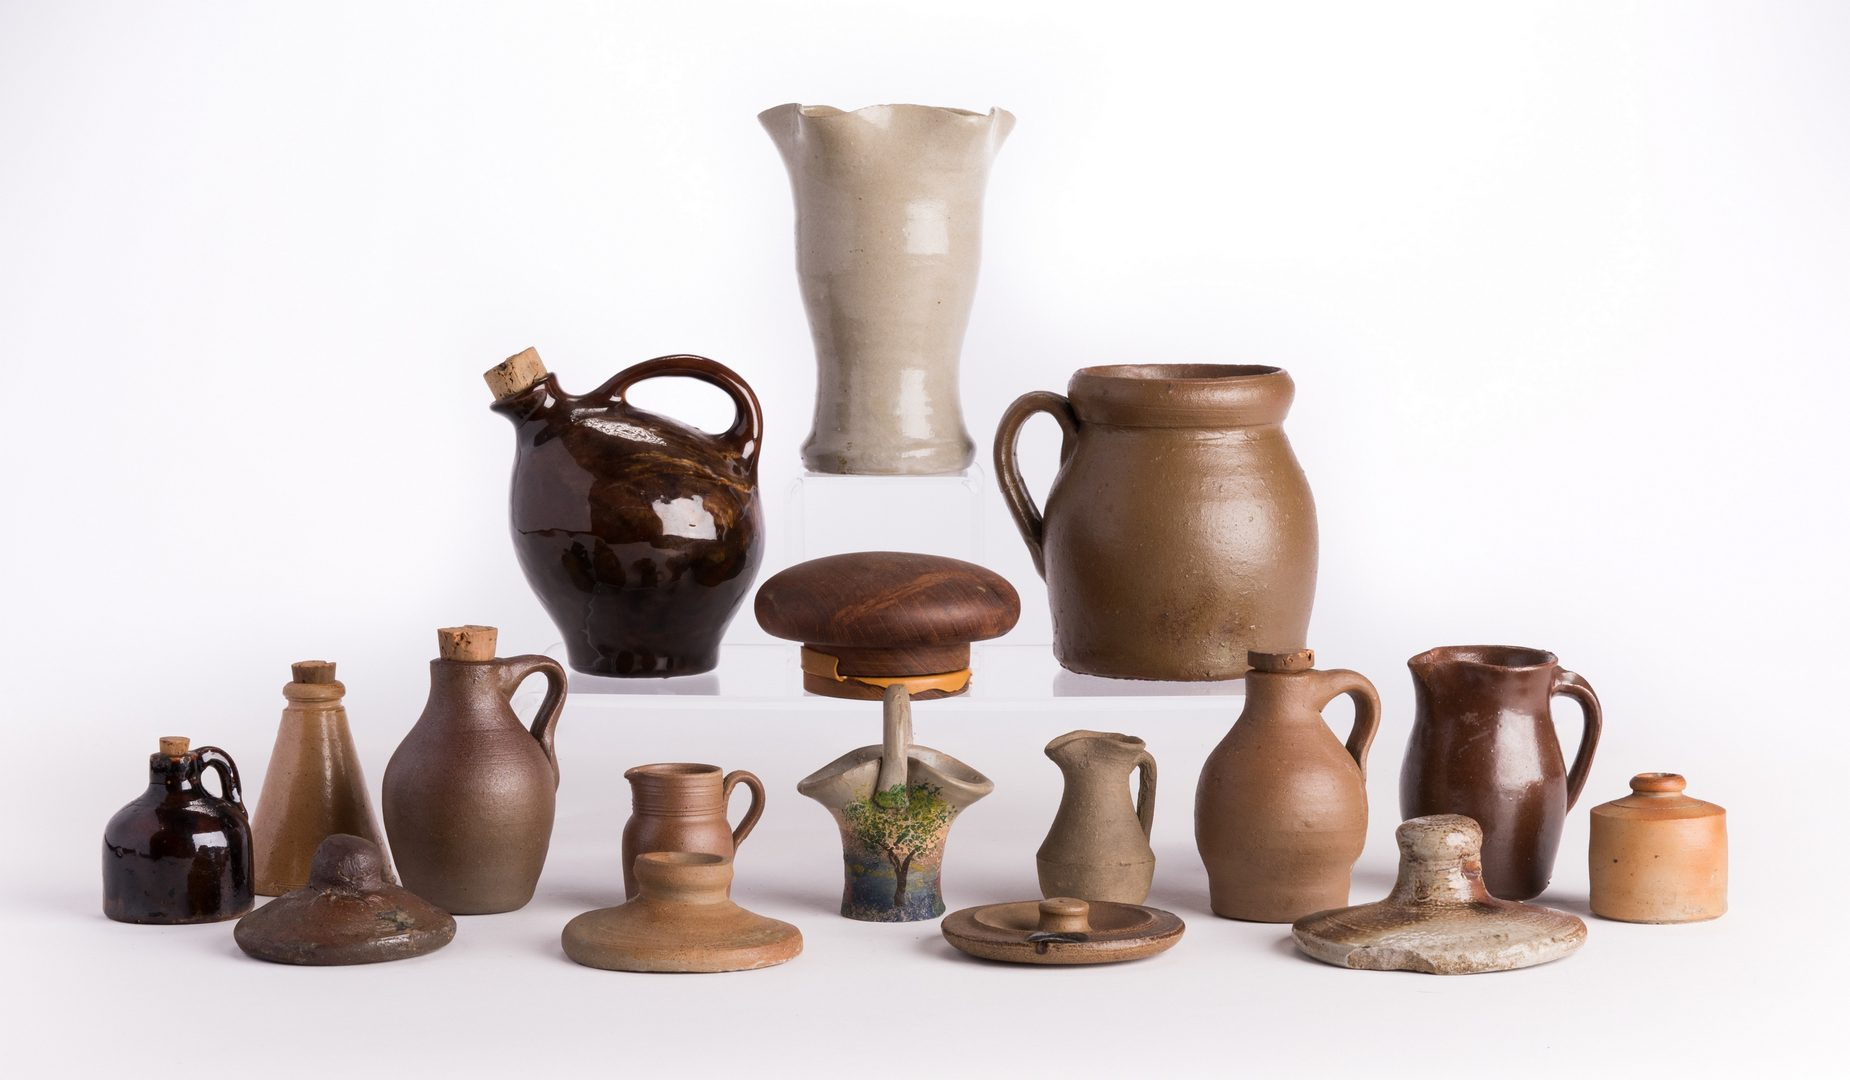 Lot 68: Group 11 Pottery Items, incl. Middle TN Miniatures, plus 1